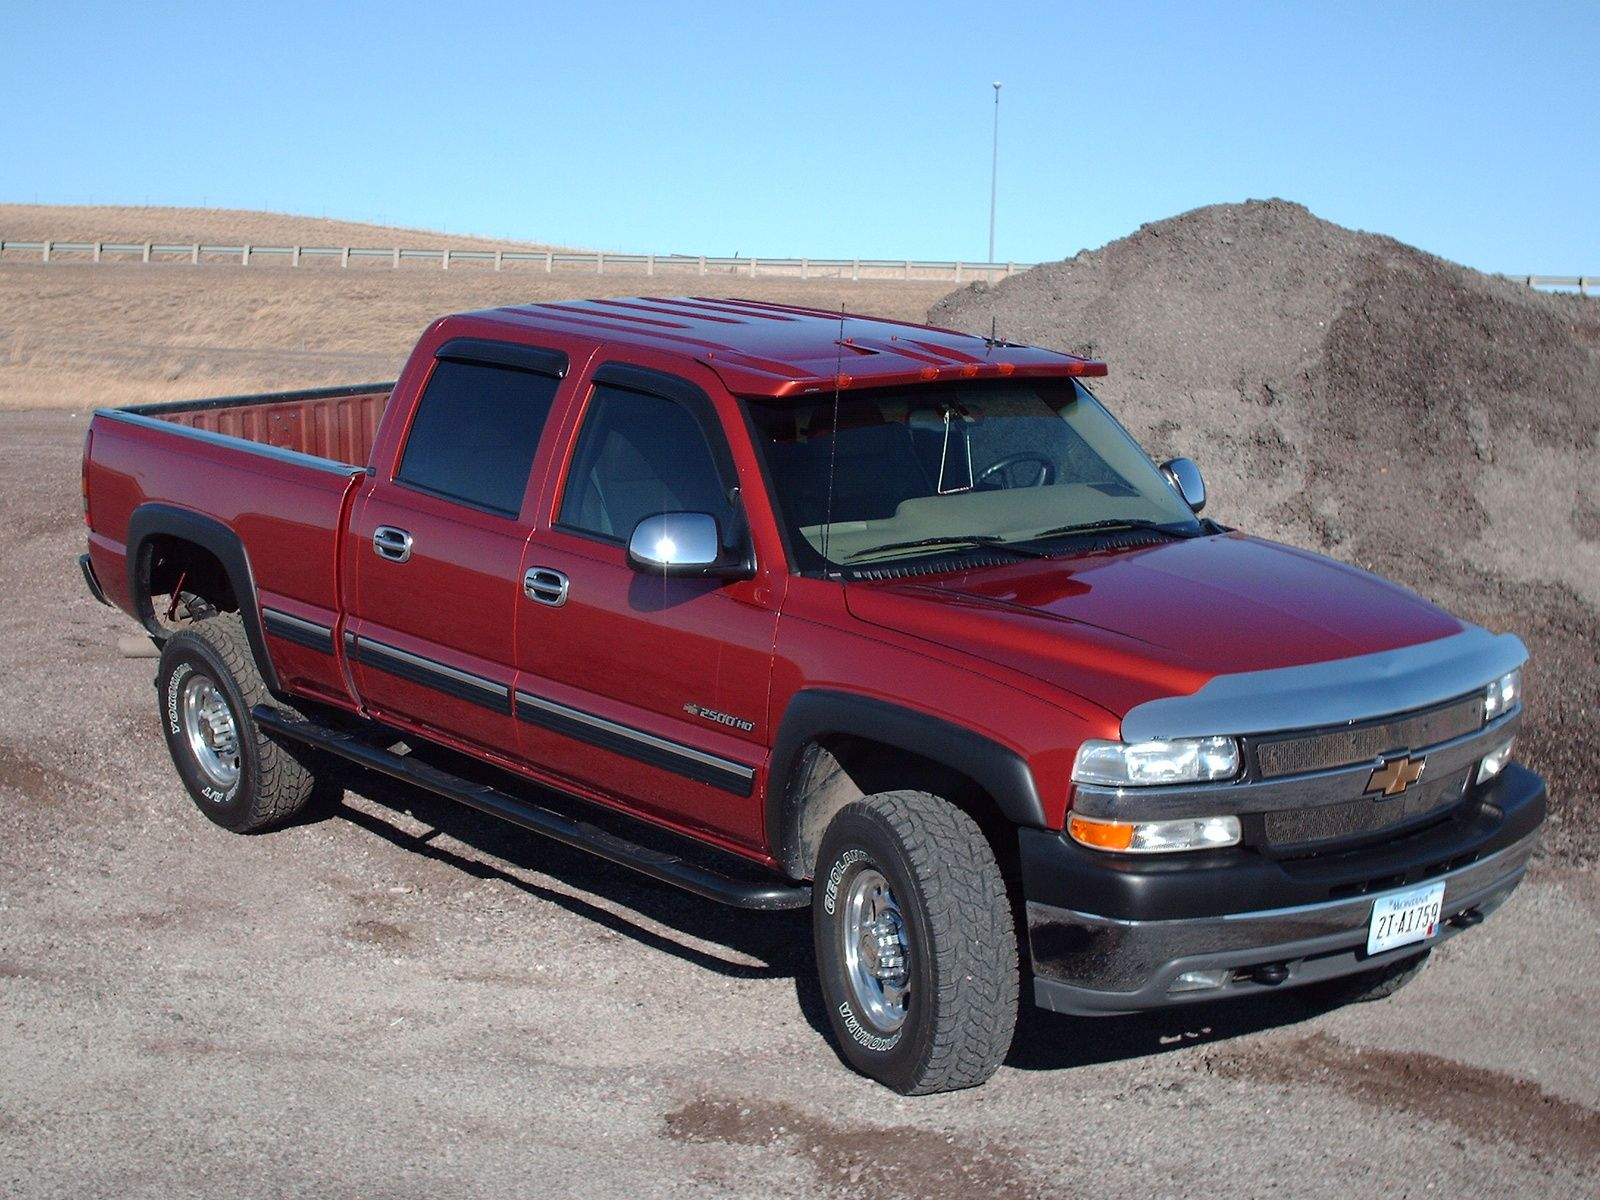 2001 Chevy Silverado 2500hd Parts Diagram Trusted Wiring Diagrams 2002 2500 Manual Data U2022 1500 Hood Accessories